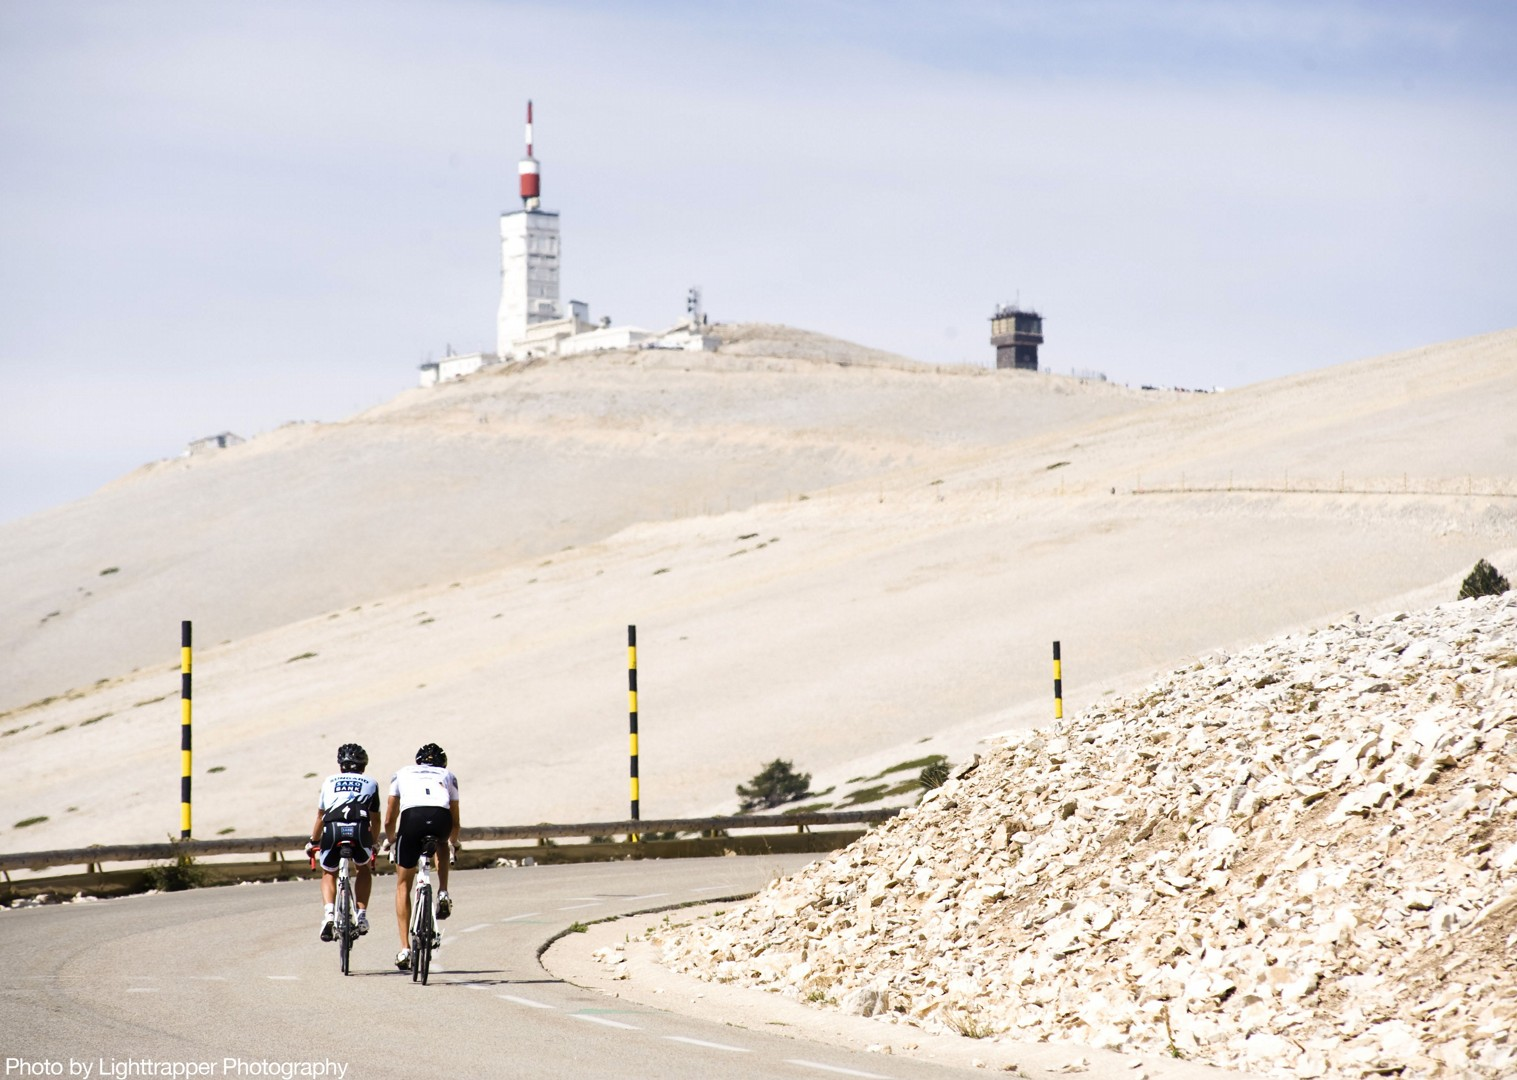 snow-capped-mountains-guided-road-cycling-holiday-french-alps.jpg - France - Alps - Mont Ventoux to Alpe d'Huez - Guided Road Cycling Holiday - Road Cycling